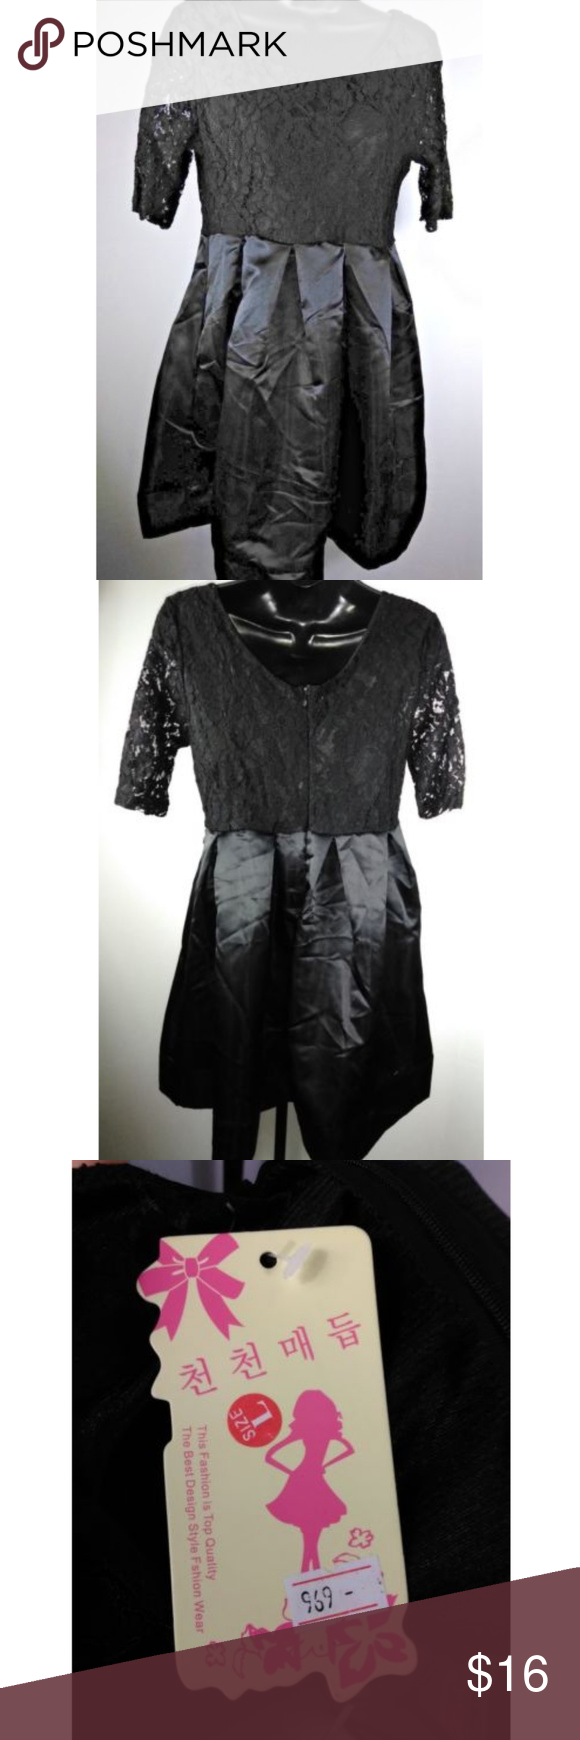 Black Lace Top Short Puffy Flare Dress NWT My Posh Picks